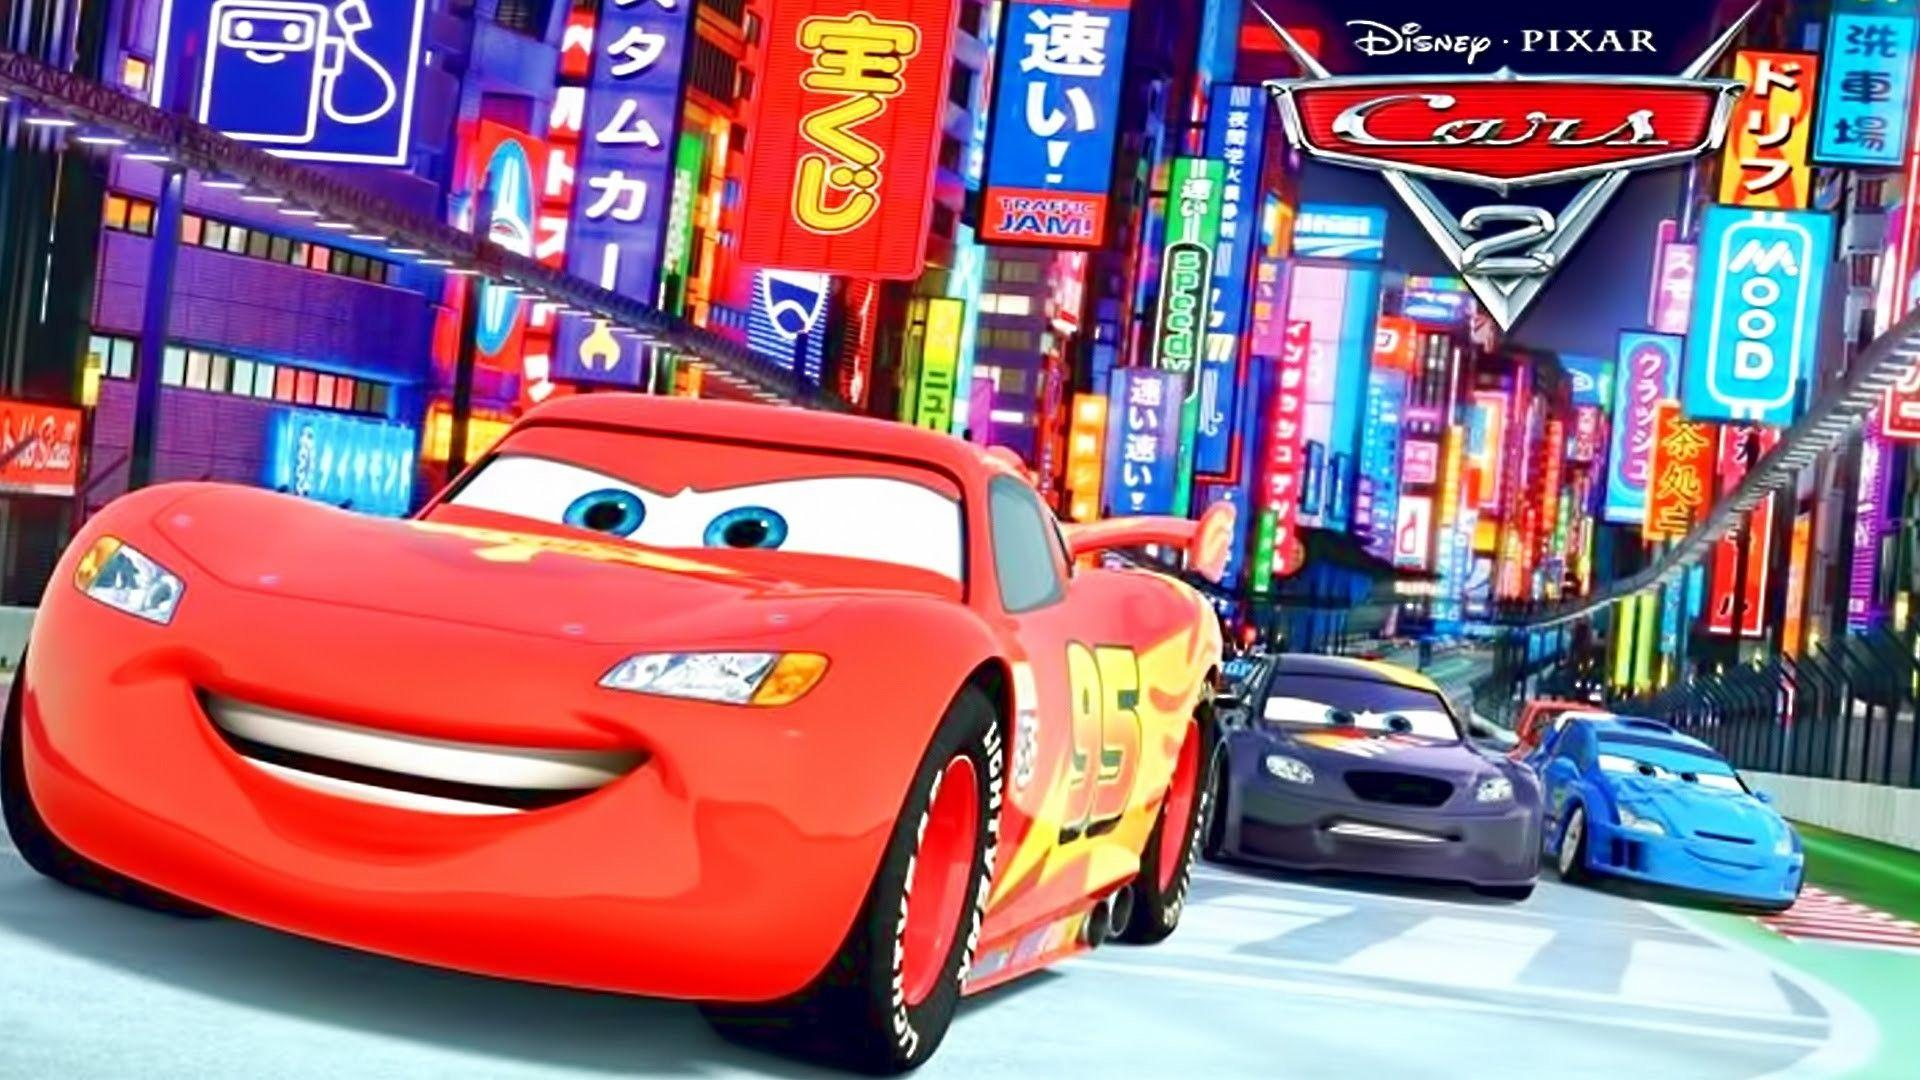 cartoon cars mcqueen lightning wallpapers mater racing disney race tow backgrounds epic toy pixar windows lighting widescreen